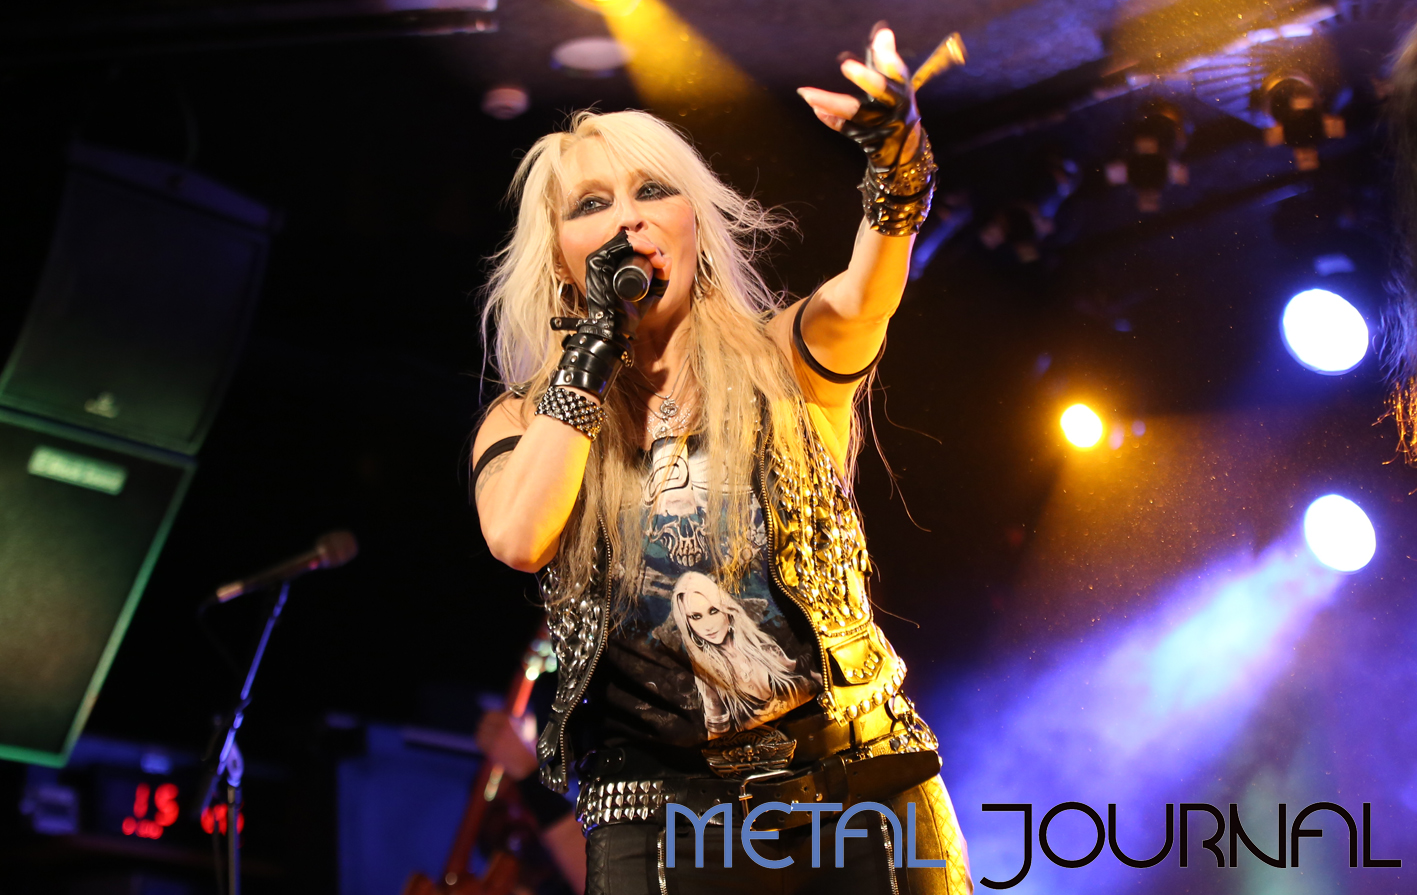 doro metal journal 2019 pic 5